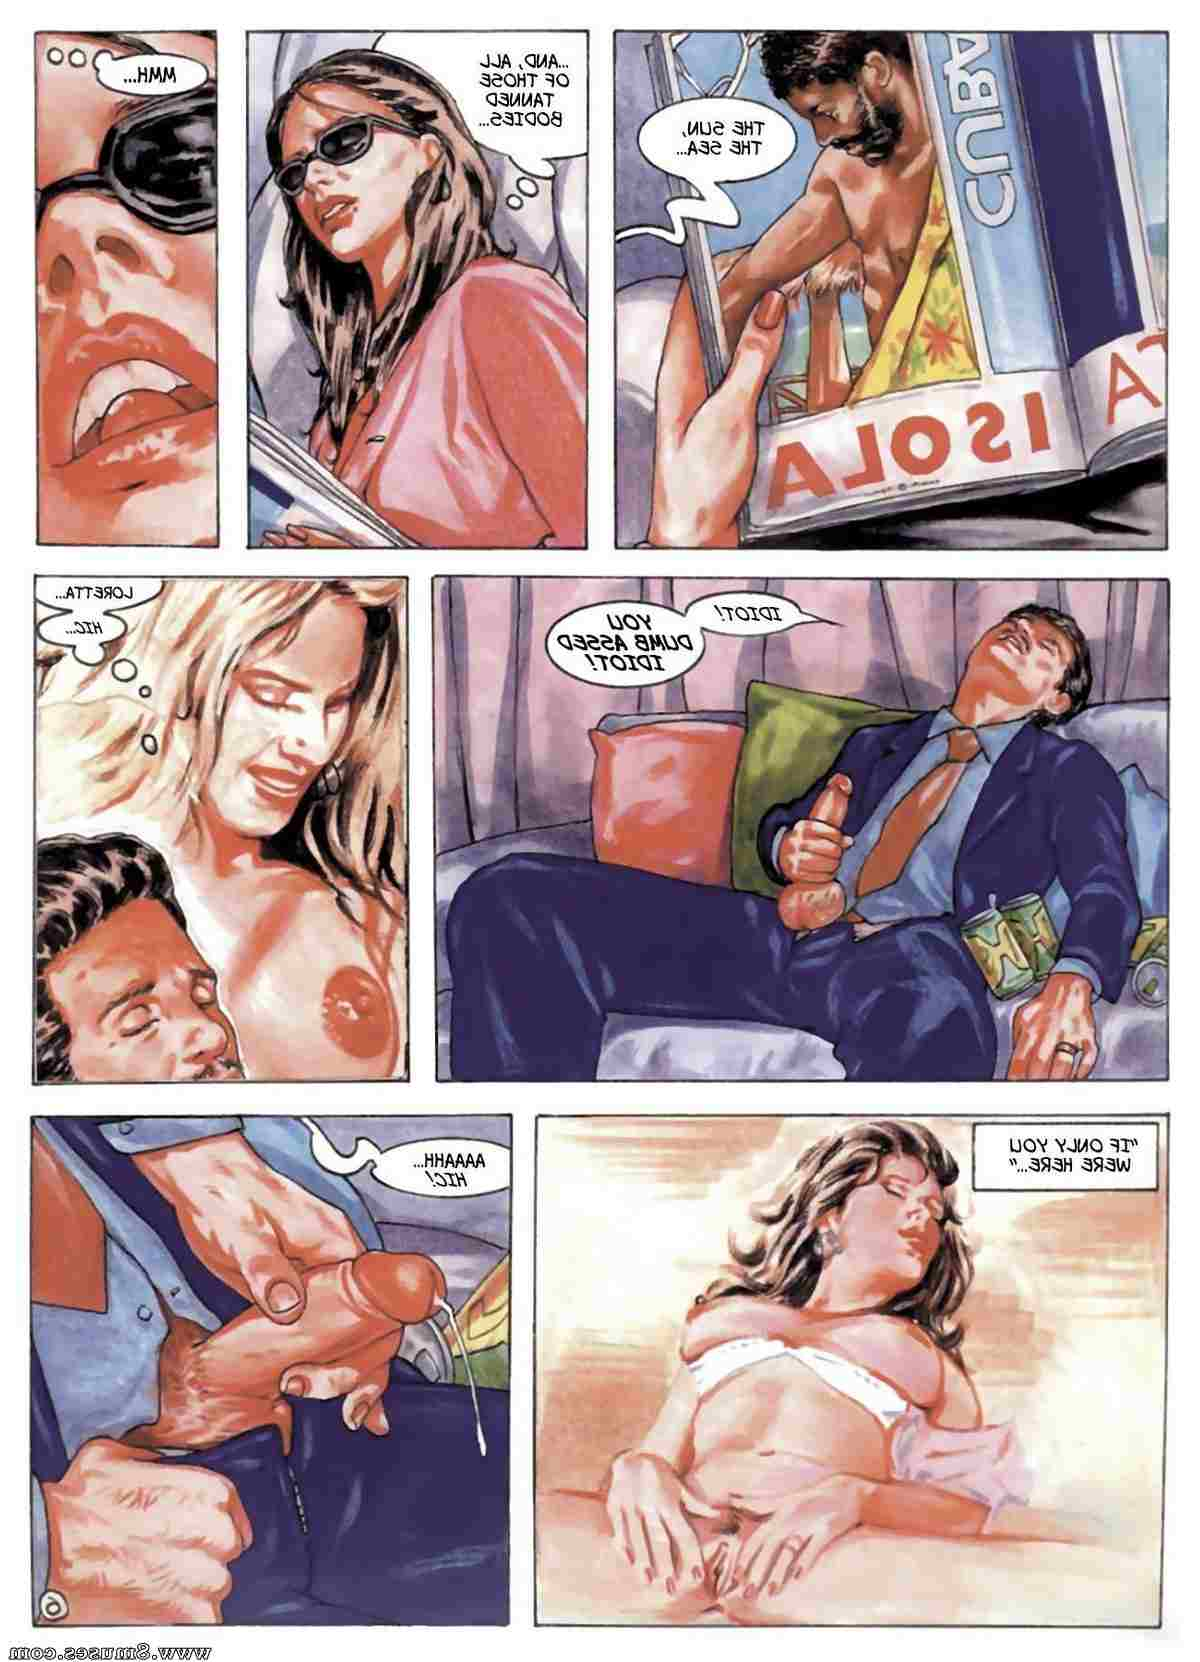 Selen-Comics/Beloved-Submission Beloved_Submission__8muses_-_Sex_and_Porn_Comics_28.jpg